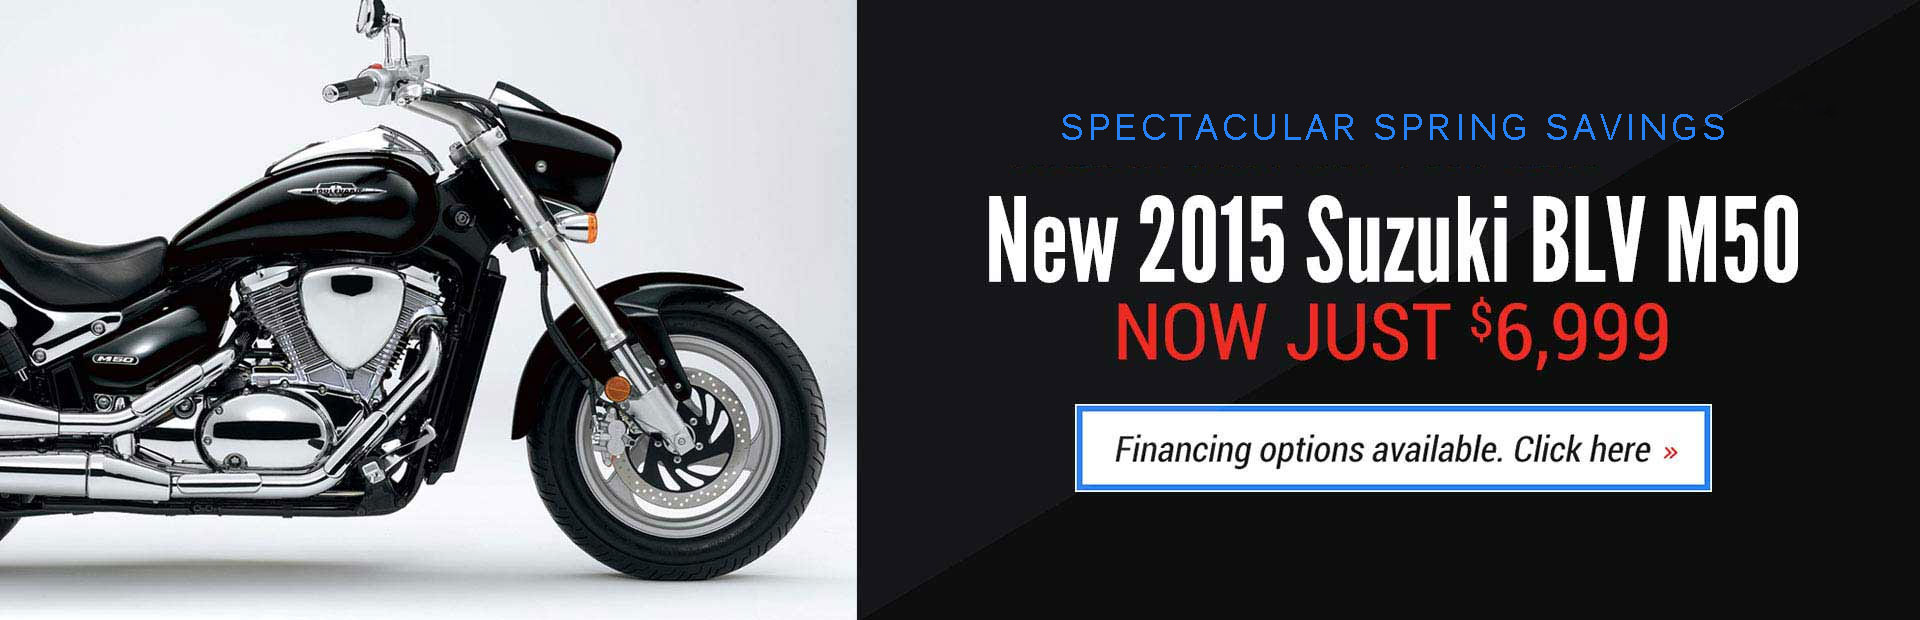 Ride in the New Year Sales Event: Get a new 2015 Suzuki Boulevard M50 for just $6,999! Financing options are available.